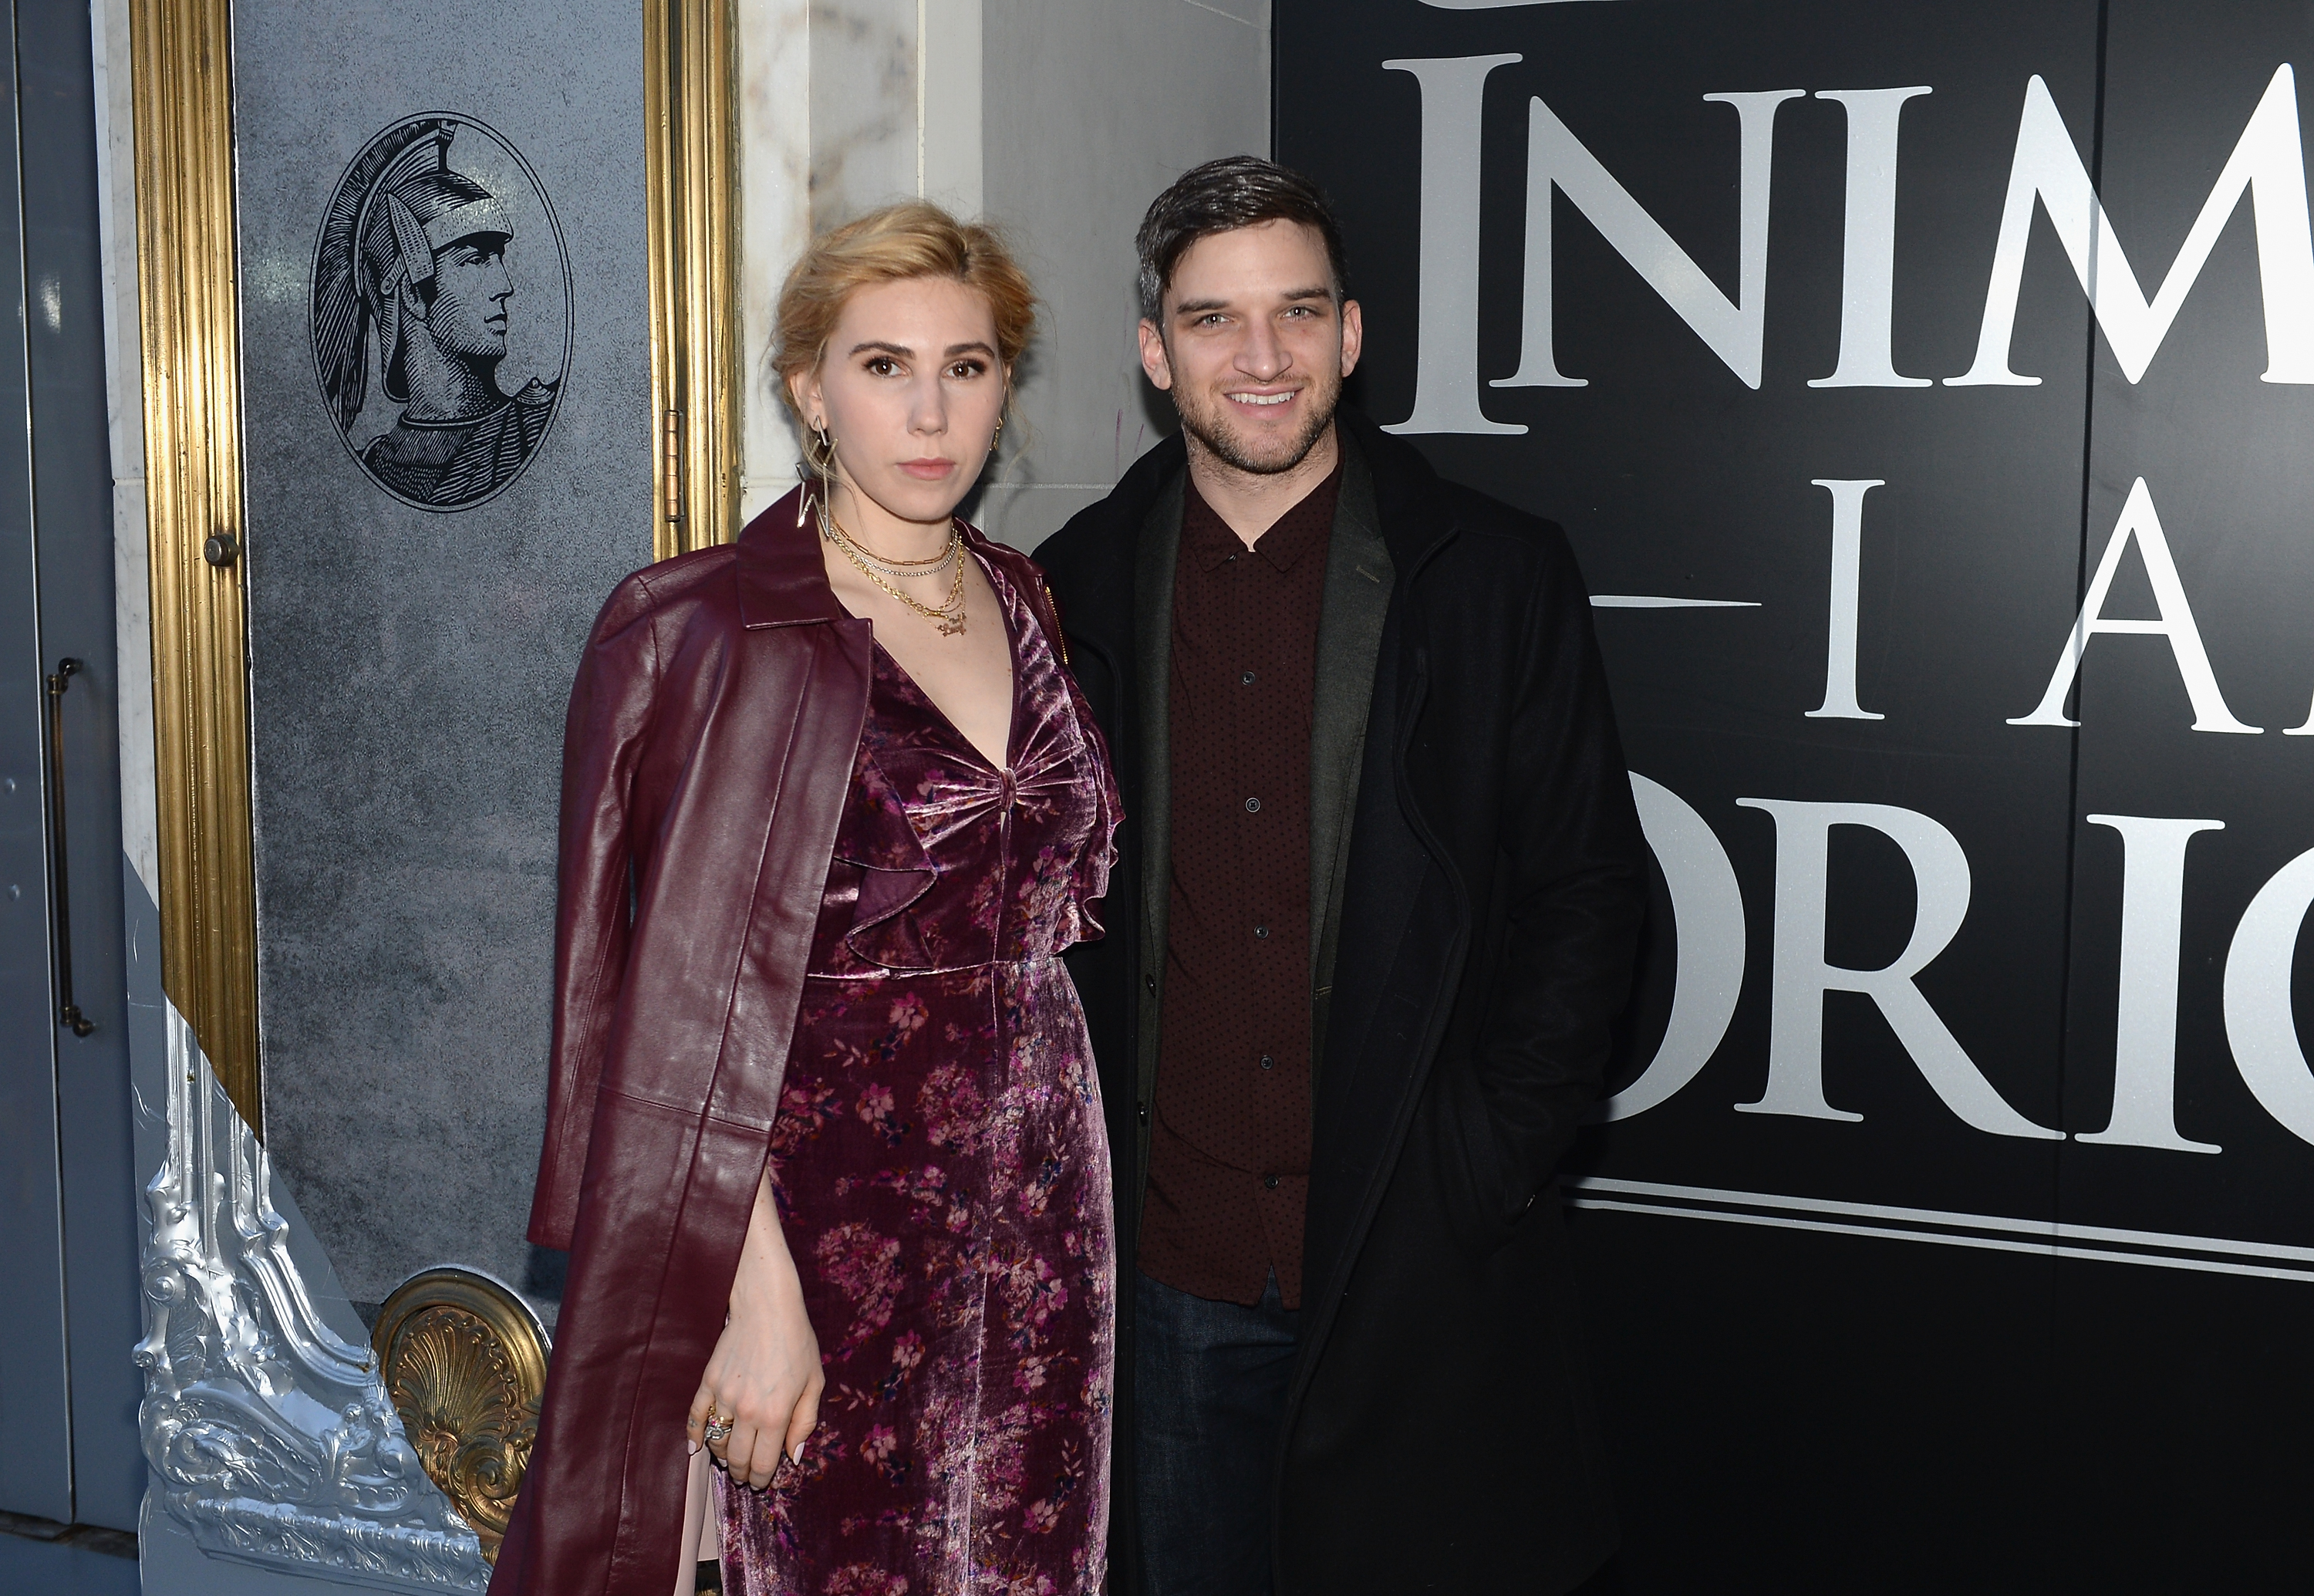 Zosia Mamet Wedding.Zosia Mamet Explains Why She Was So Private About Her Wedding